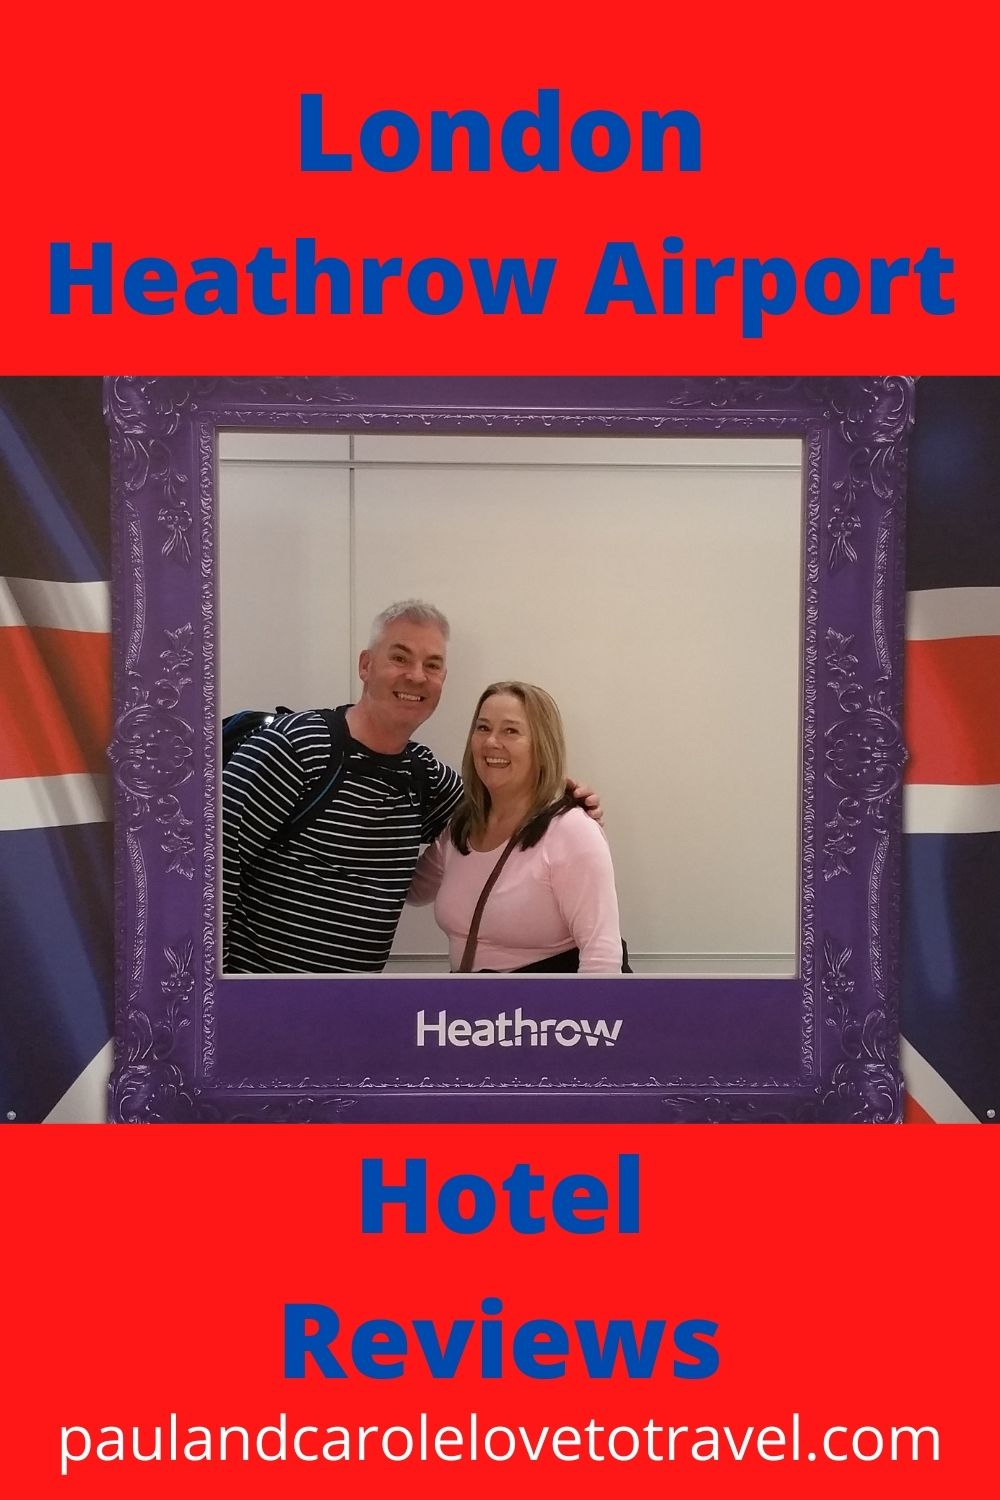 Heathrow Airport London Hotel Reviews. Find out where to stay pre or post your flight from Heathrow Airport London. #Travel #Airport #Heathrow #Hotels #flights #paulandcarole